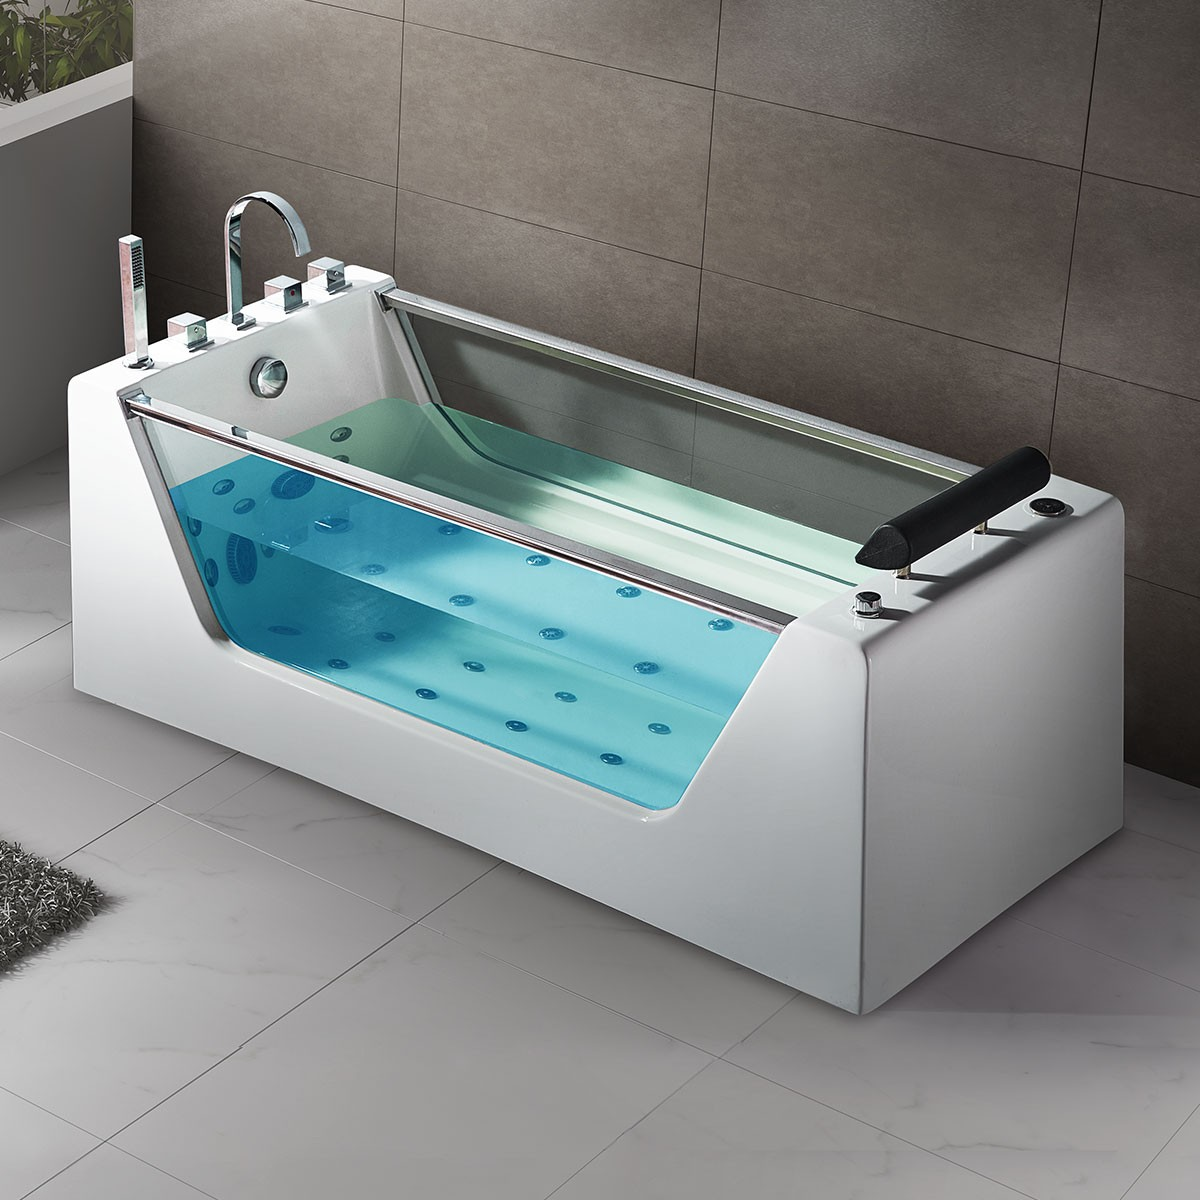 67 In Whirlpool Tub - Acrylic White (DK-Q412) | Decoraport USA